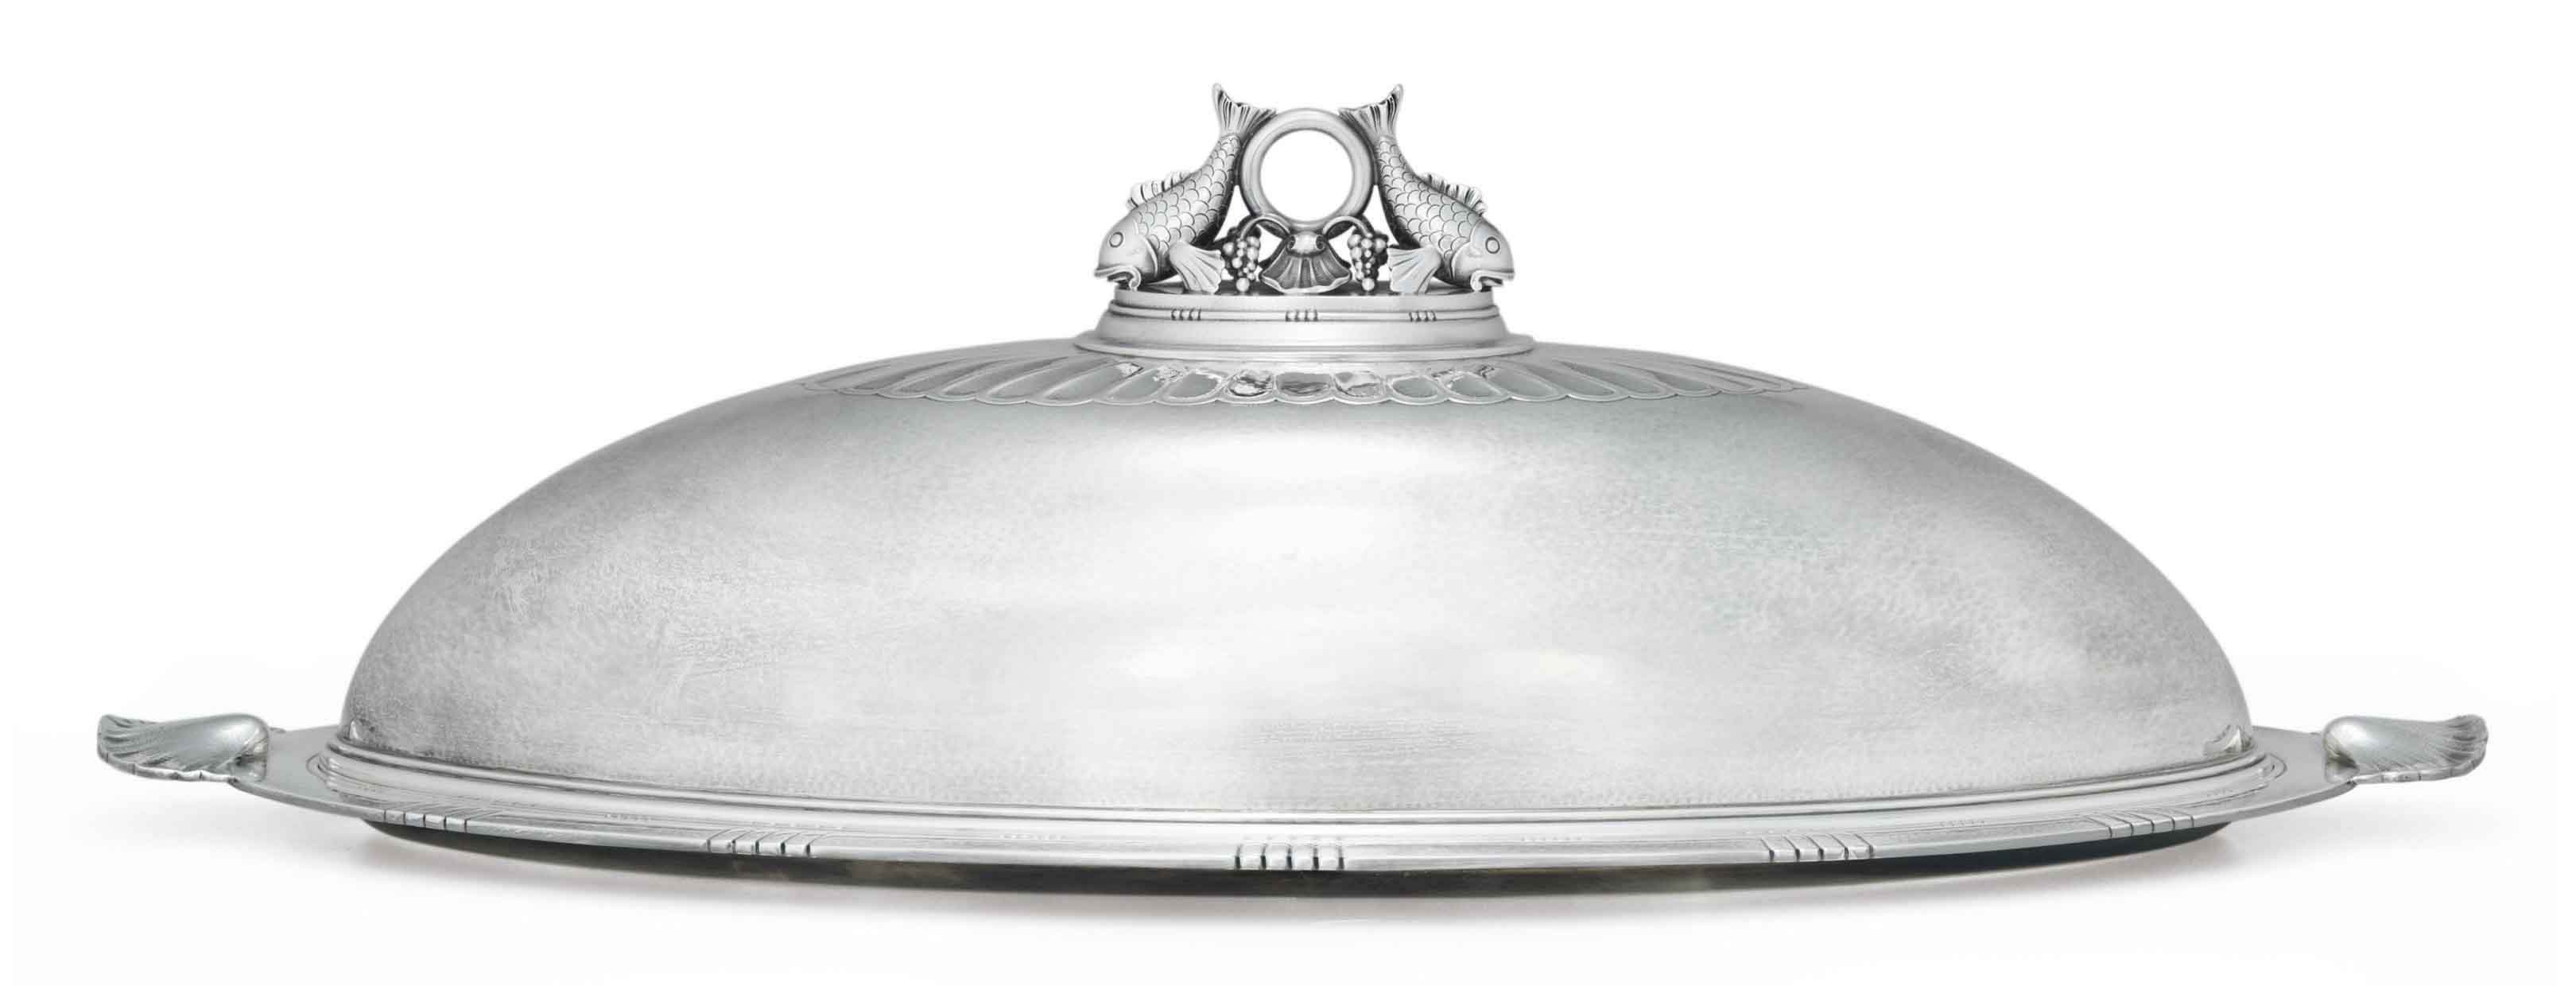 A DANISH SILVER FISH DISH, COVER AND MAZARINE, DESIGNED BY JOHAN ROHDE